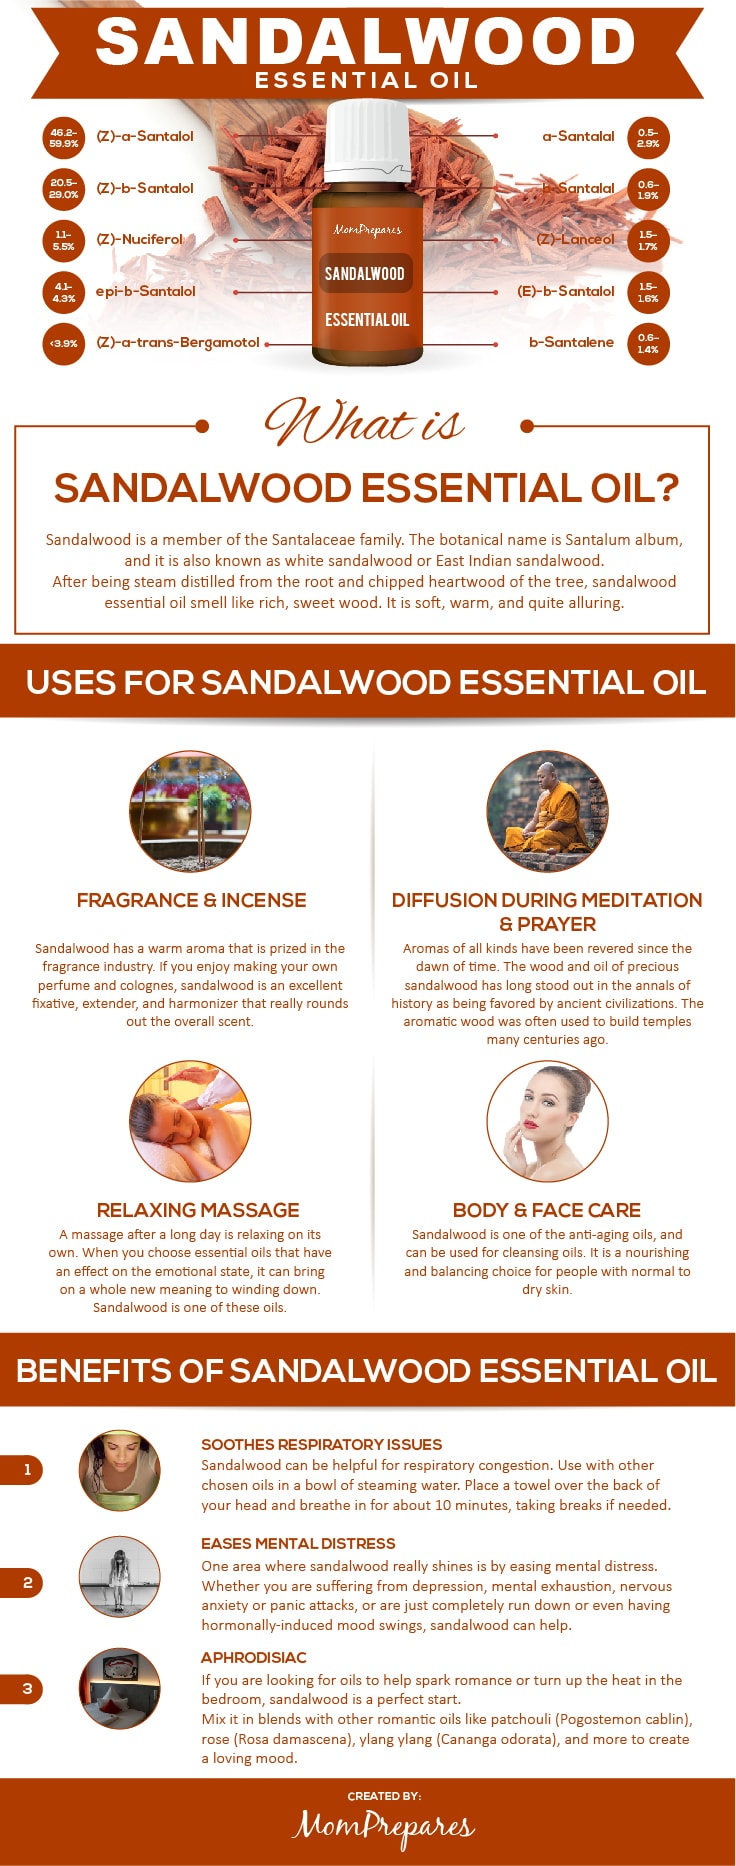 Sandalwood infographic